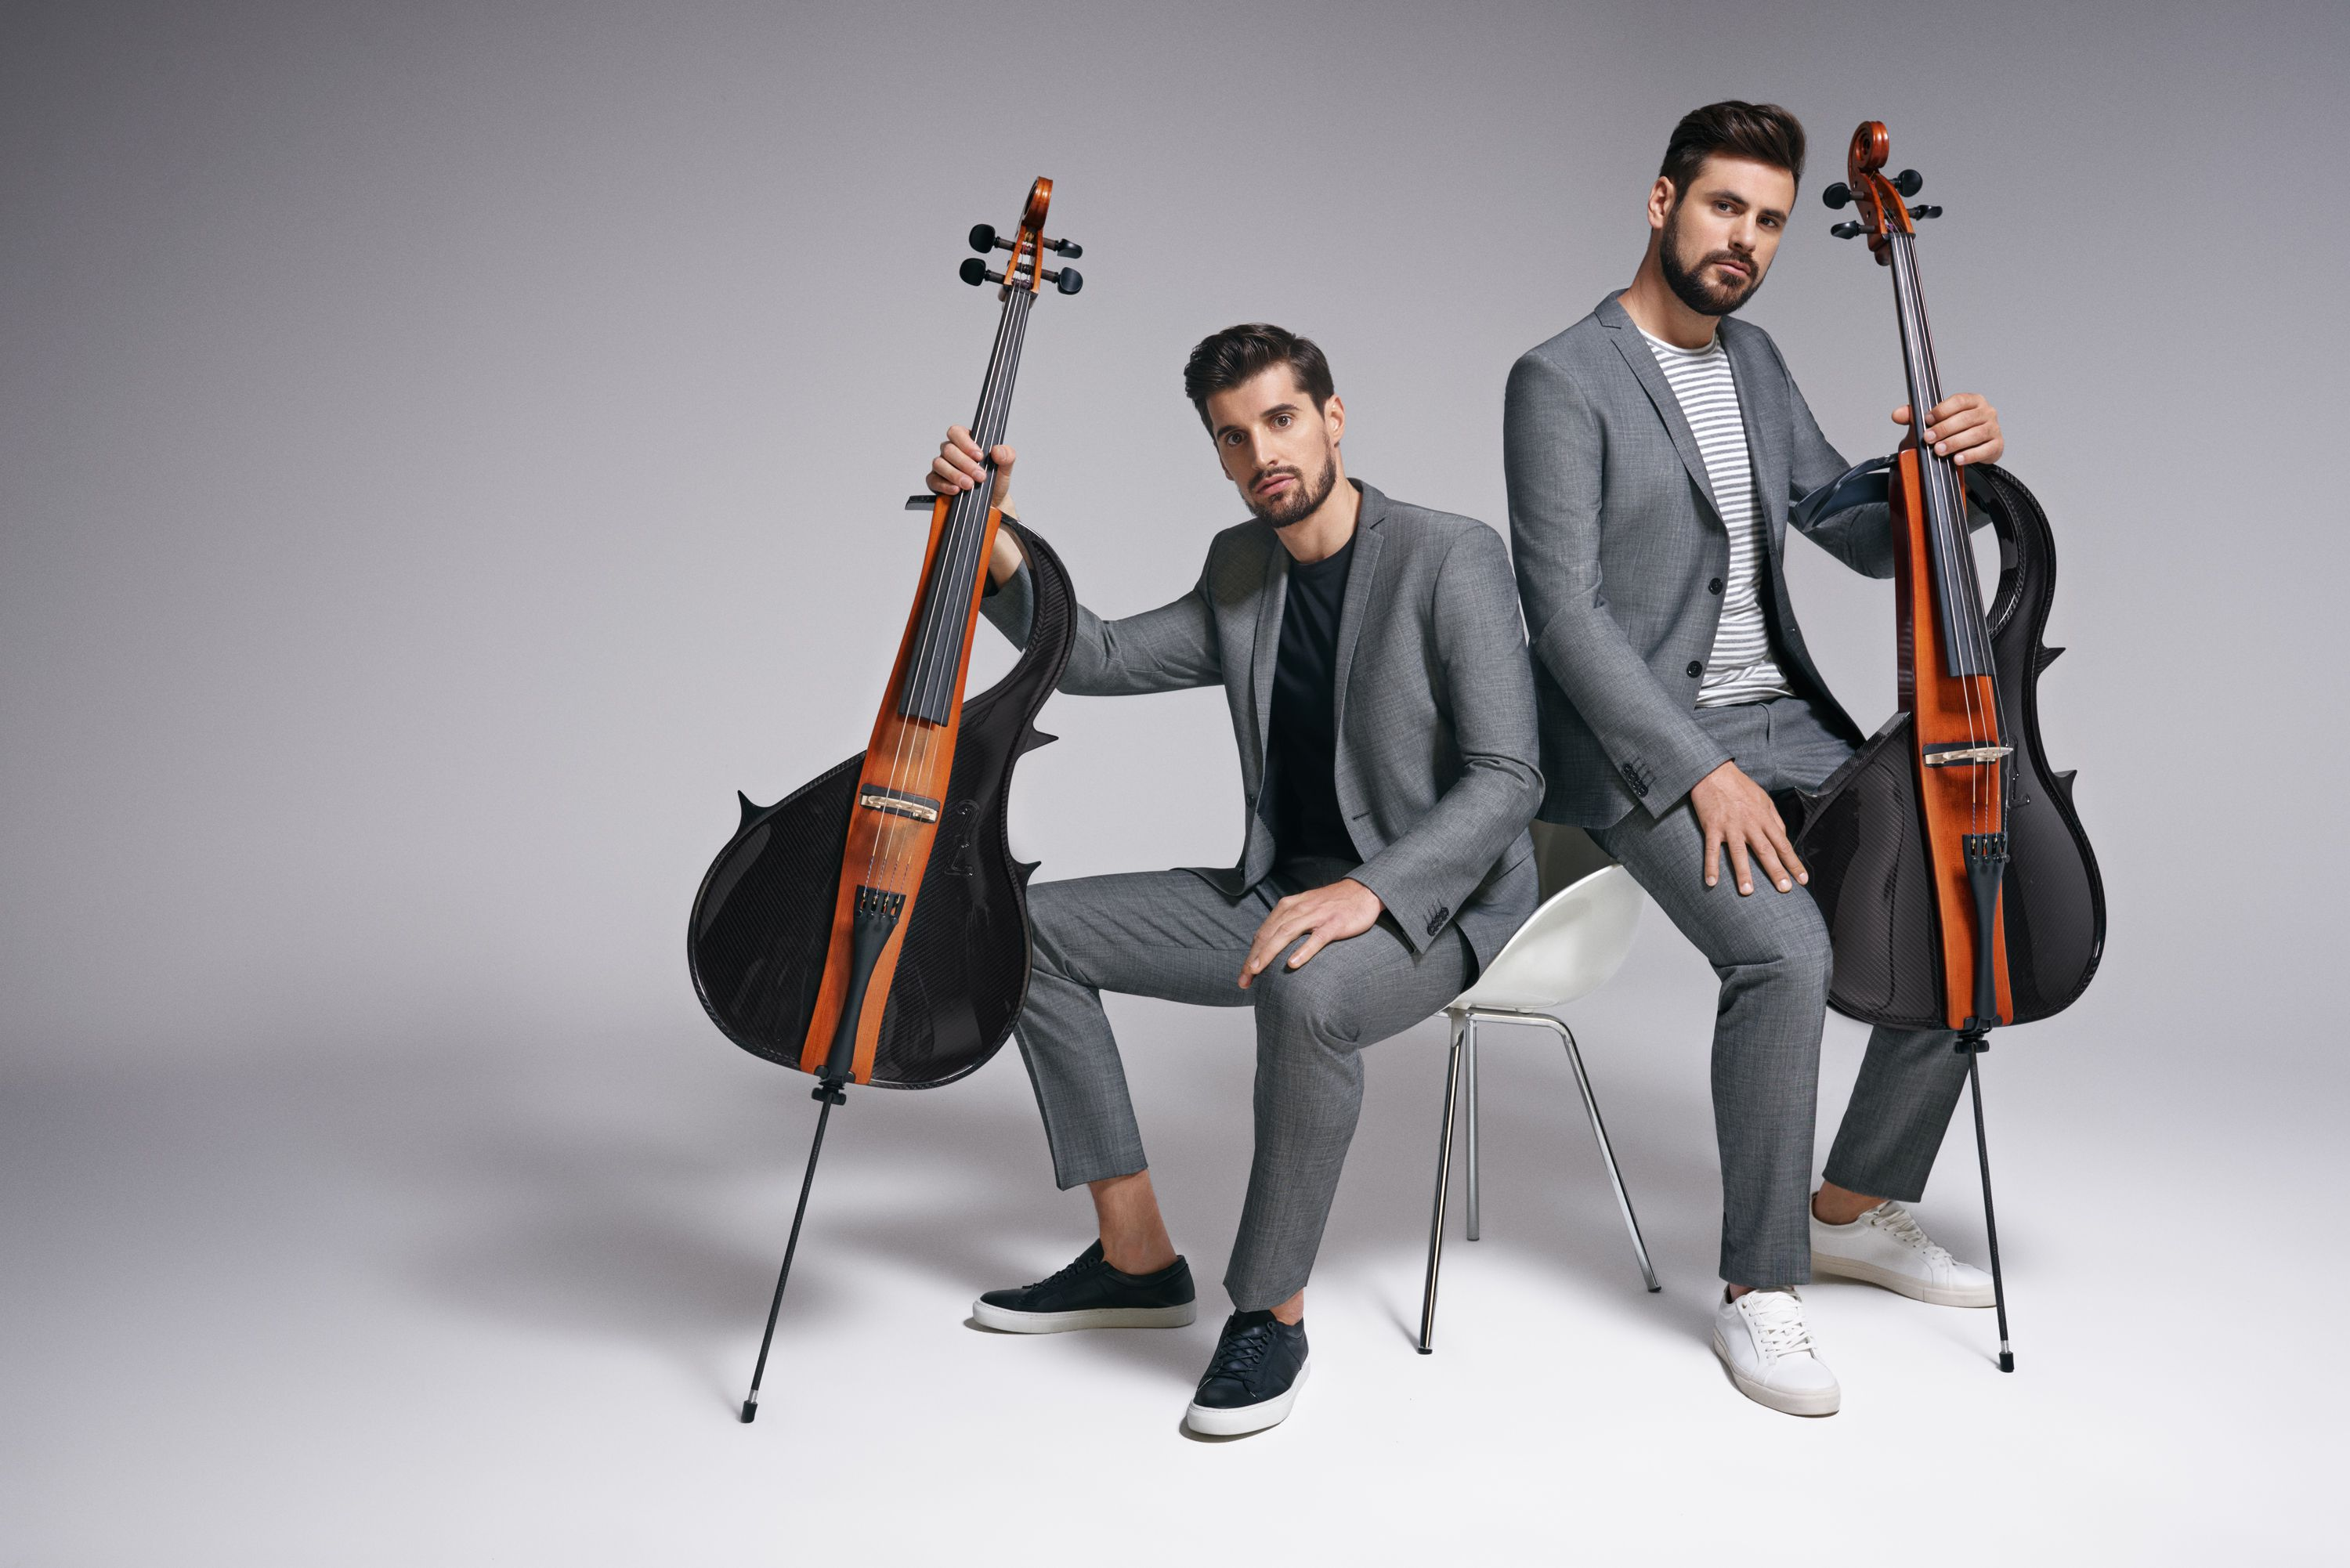 2CELLOS zaštitna lica s.Oliver Black Label kampanje